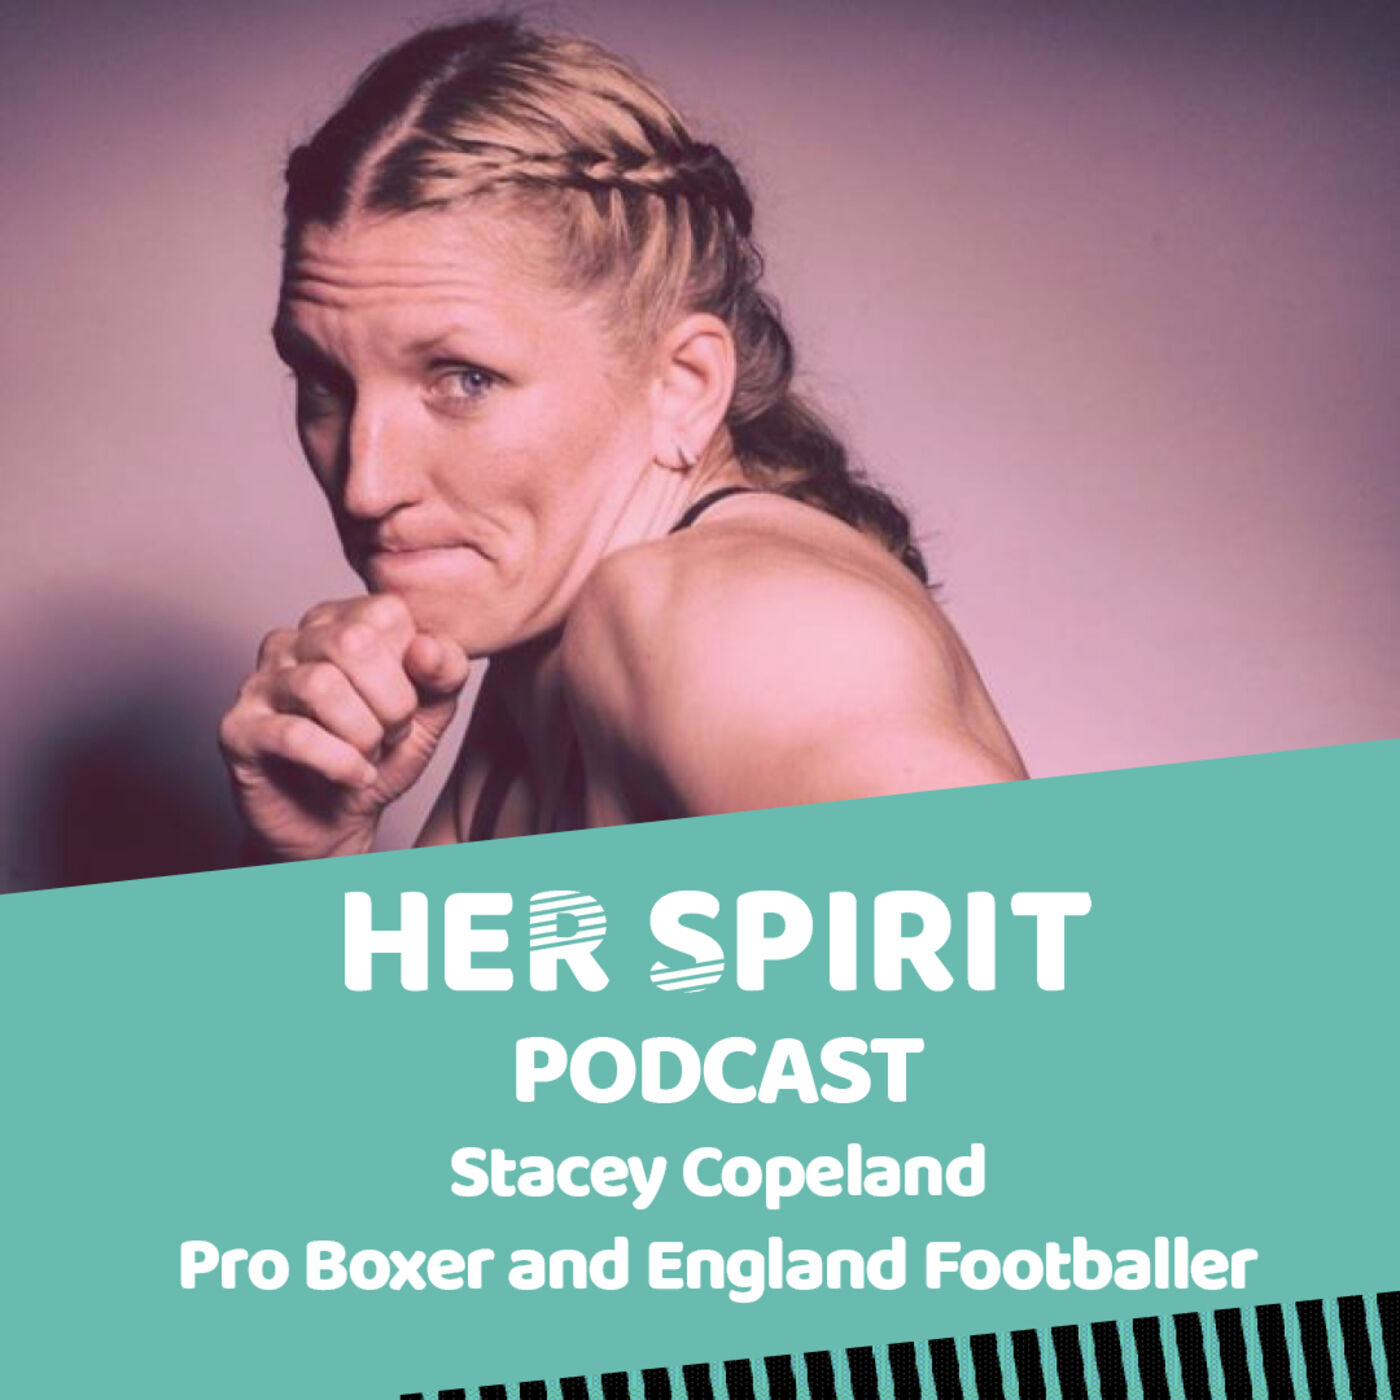 Professional boxer and England Footballer Stacey Copeland talk to Louise and Annie about her love of sport and her passion for gender equality for all